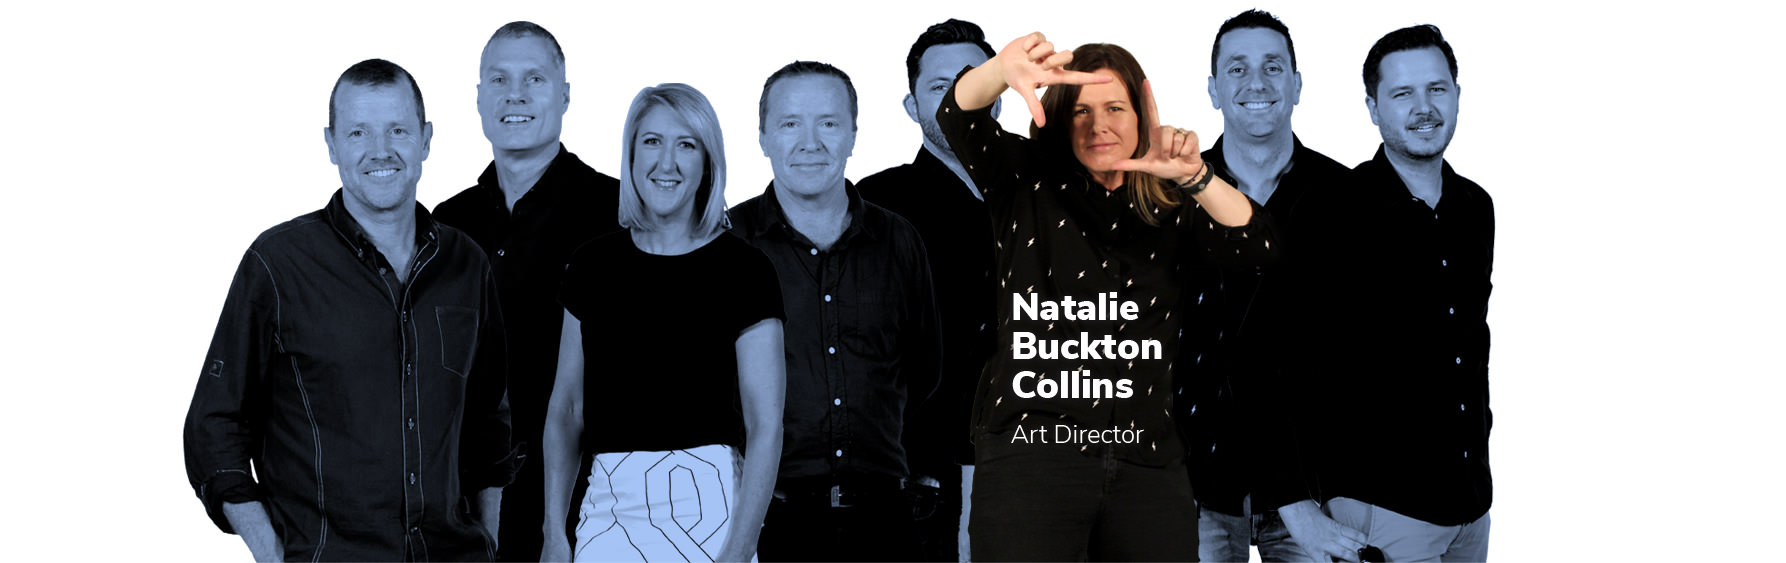 Natalie Buckton Collins - Art Director